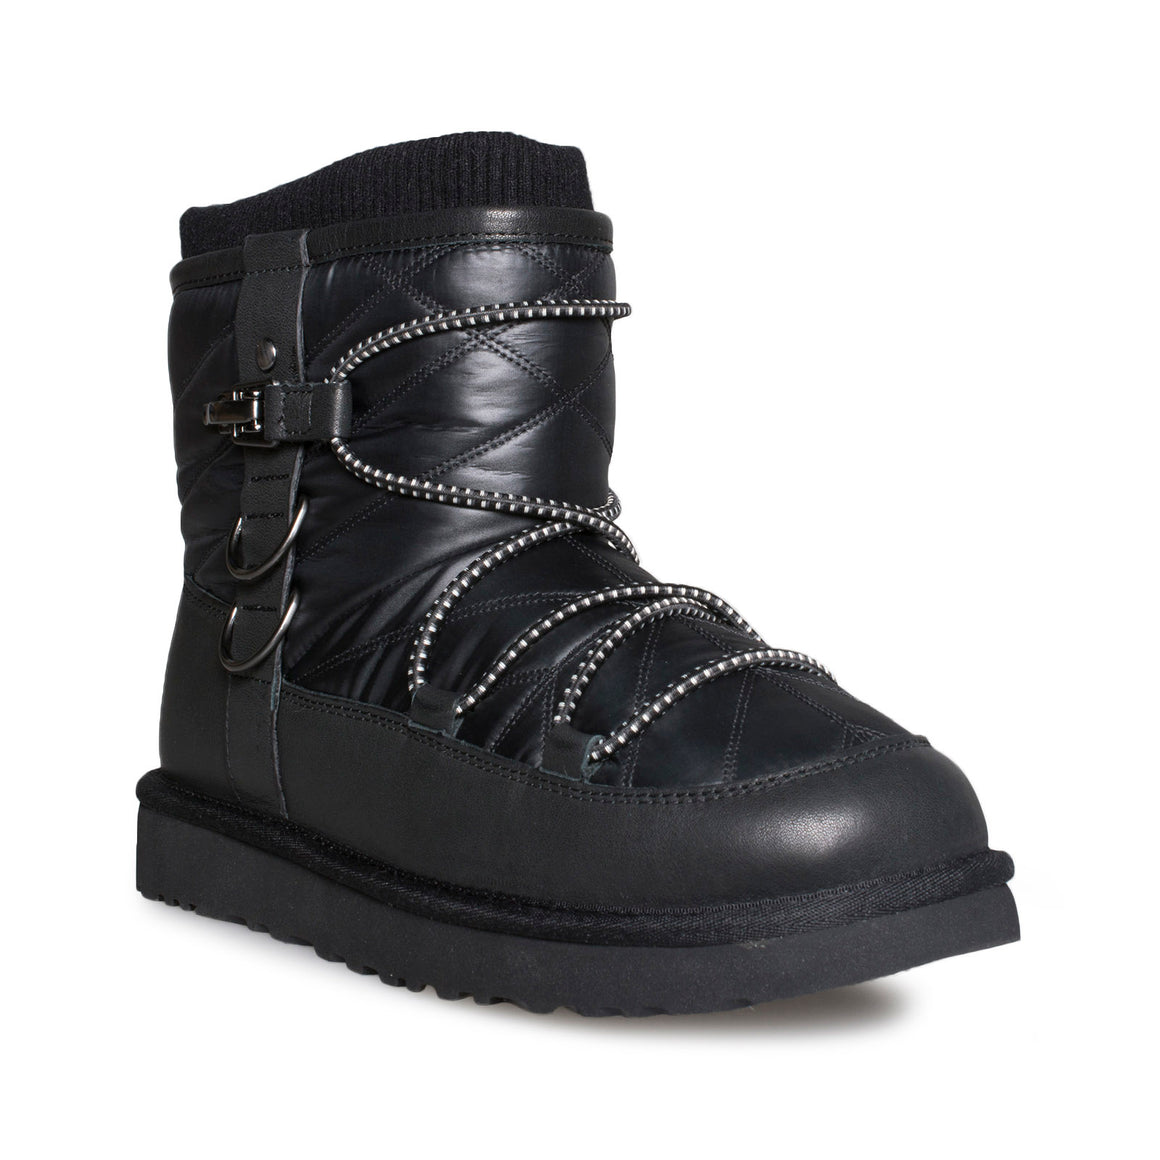 UGG Lakes & Lights Classic Short Black Boots - Women's